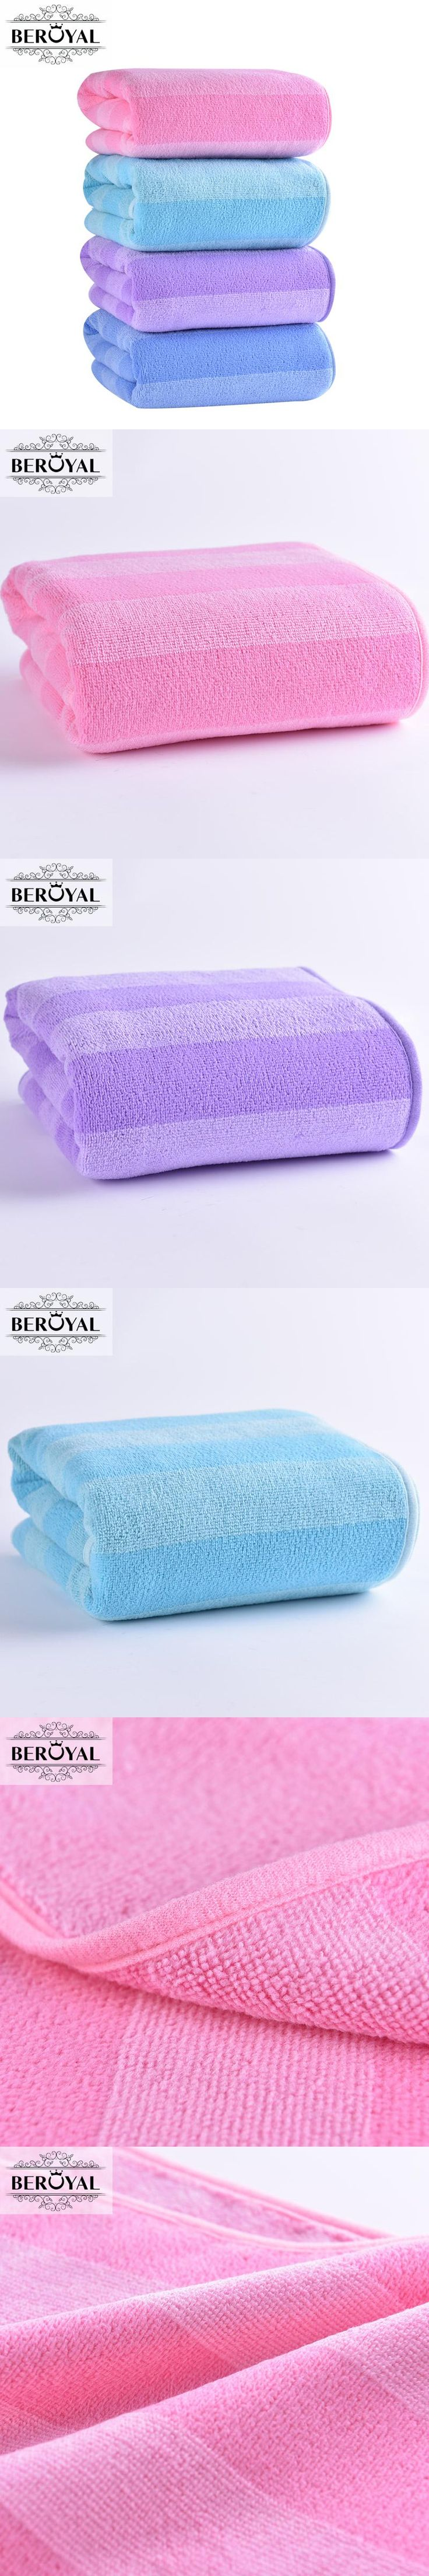 New 2017 Absorbent Bath Towel -- 70*140cm Microfiber Towel Quick-Drying Stripe Towels Spring/Autumn Swimming Spa Towel for Adult